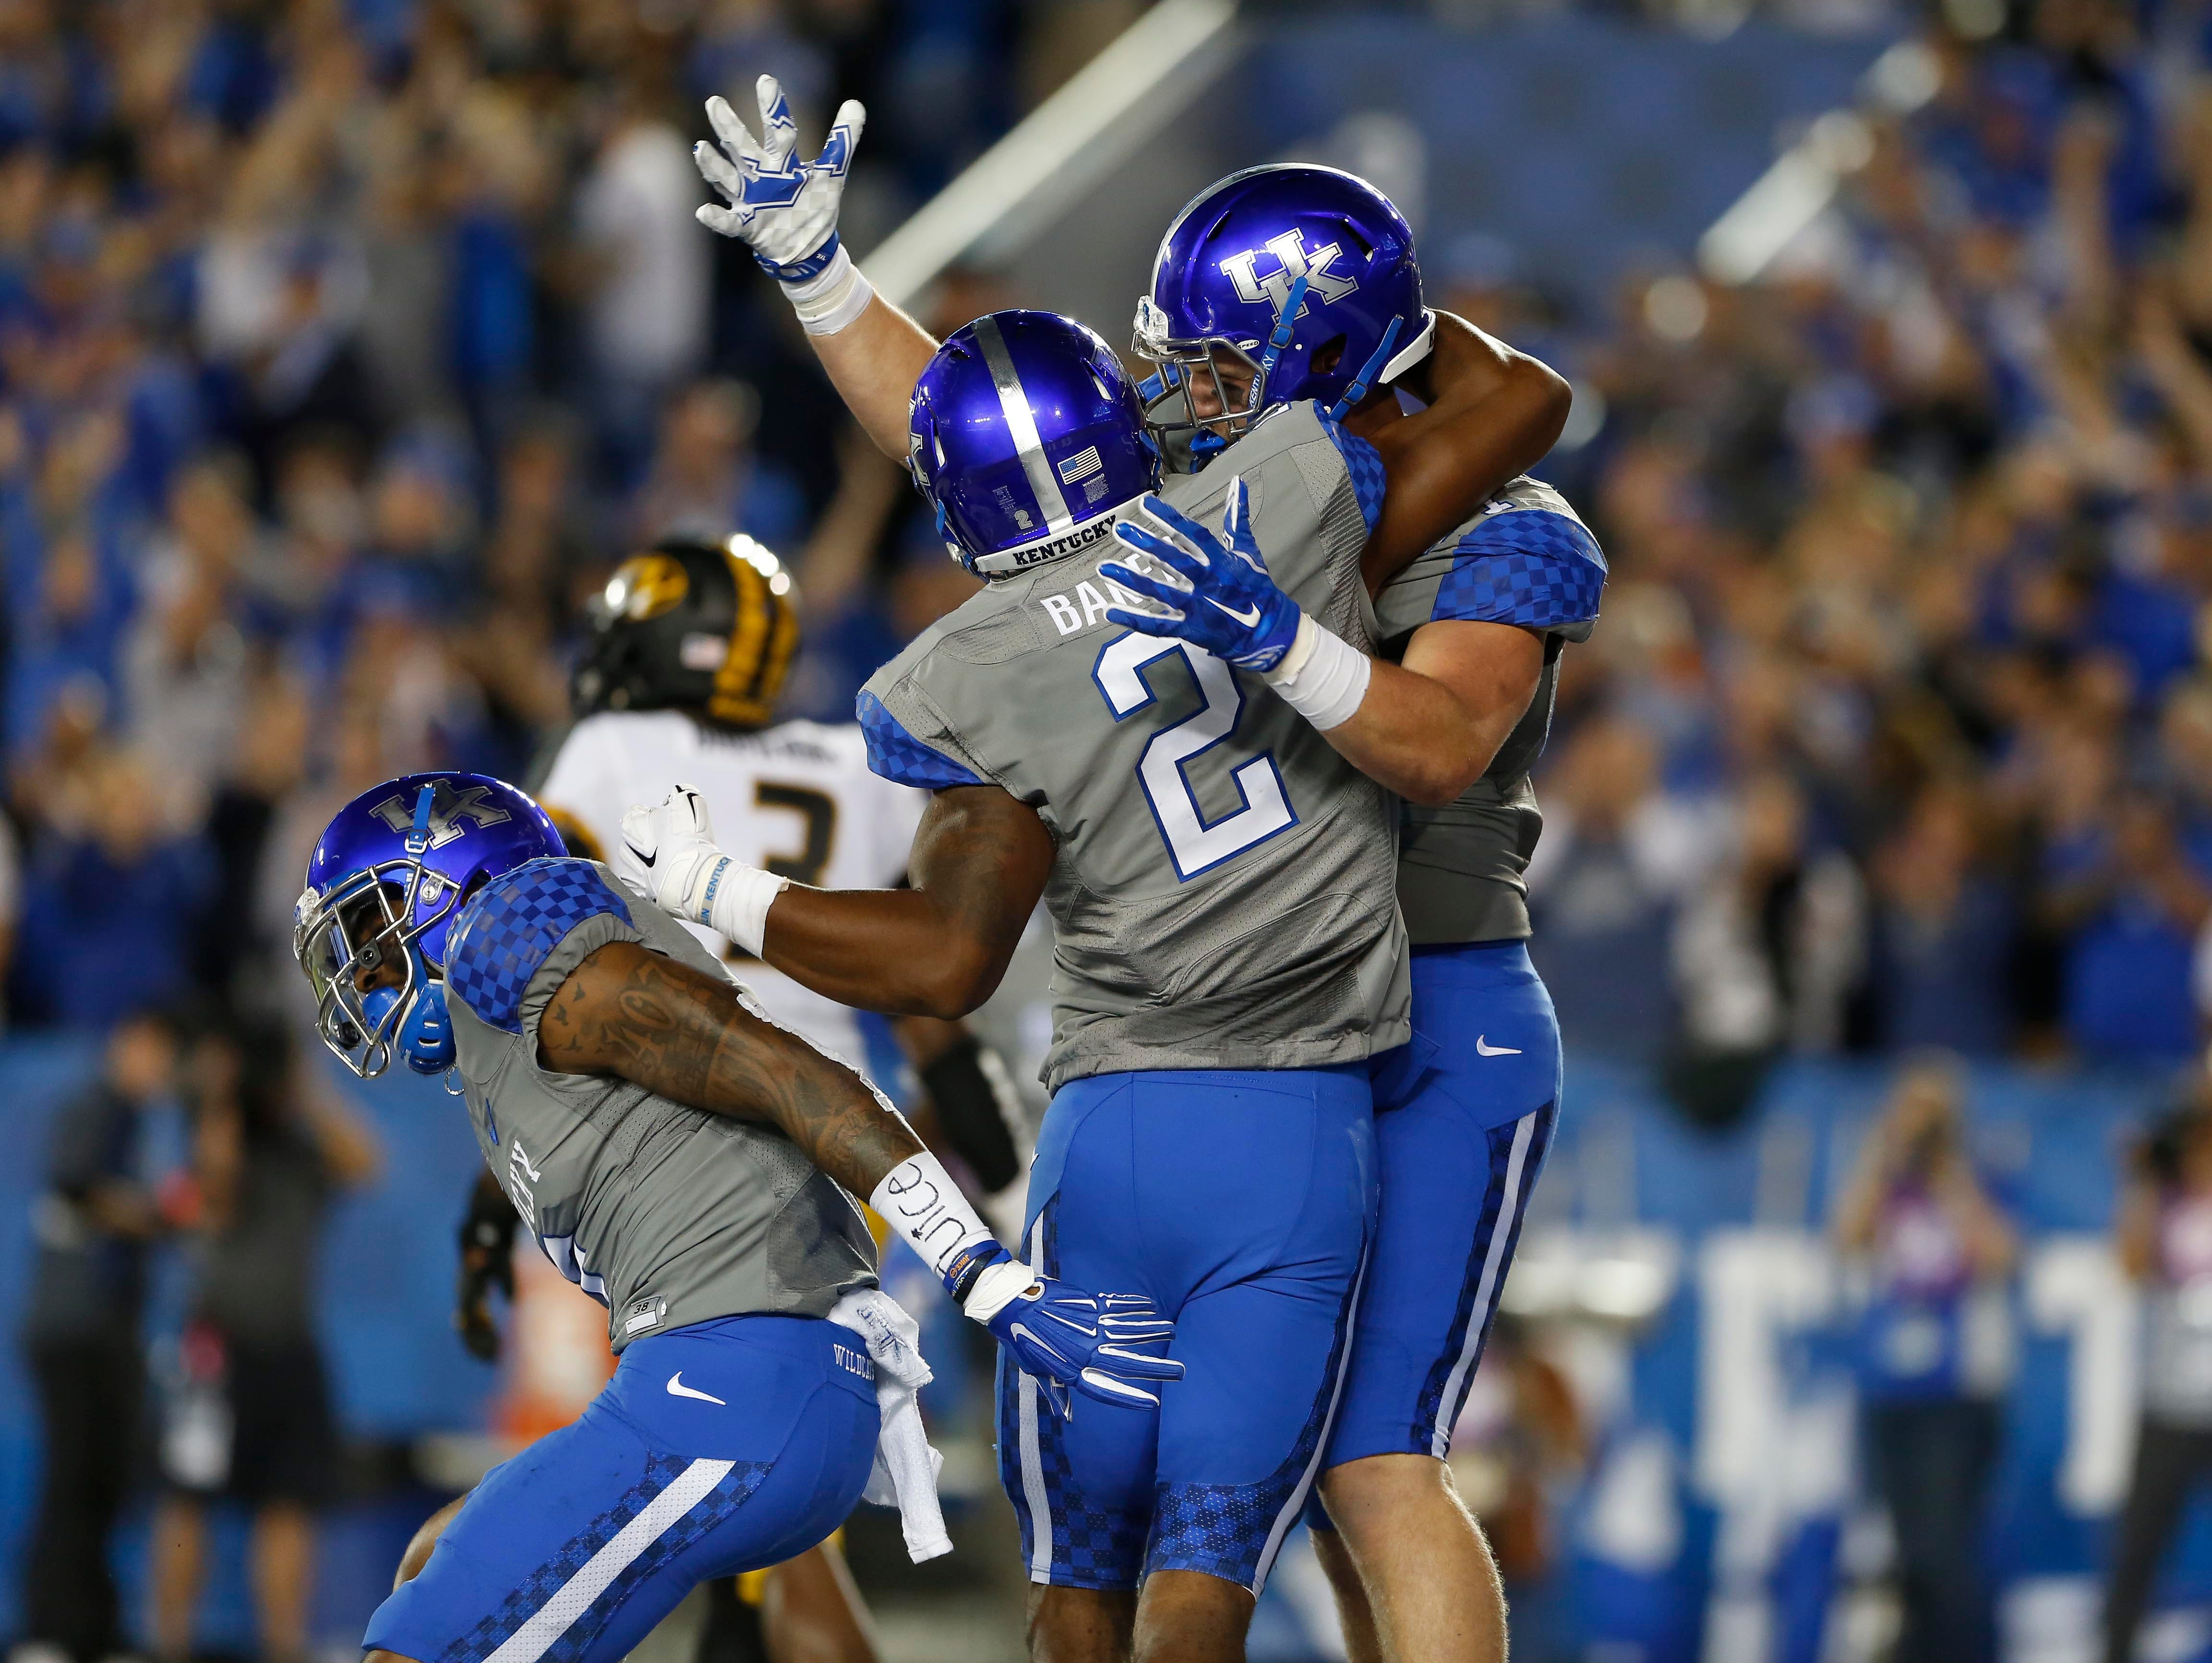 The Kentucky Wildcats' C. J. Conrad (87) celebrates with wide receiver Dorian Baker (2) after scoring a touchdown against the Missouri Tigers in the second half at Commonwealth Stadium. Kentucky defeated Missouri 21-13.